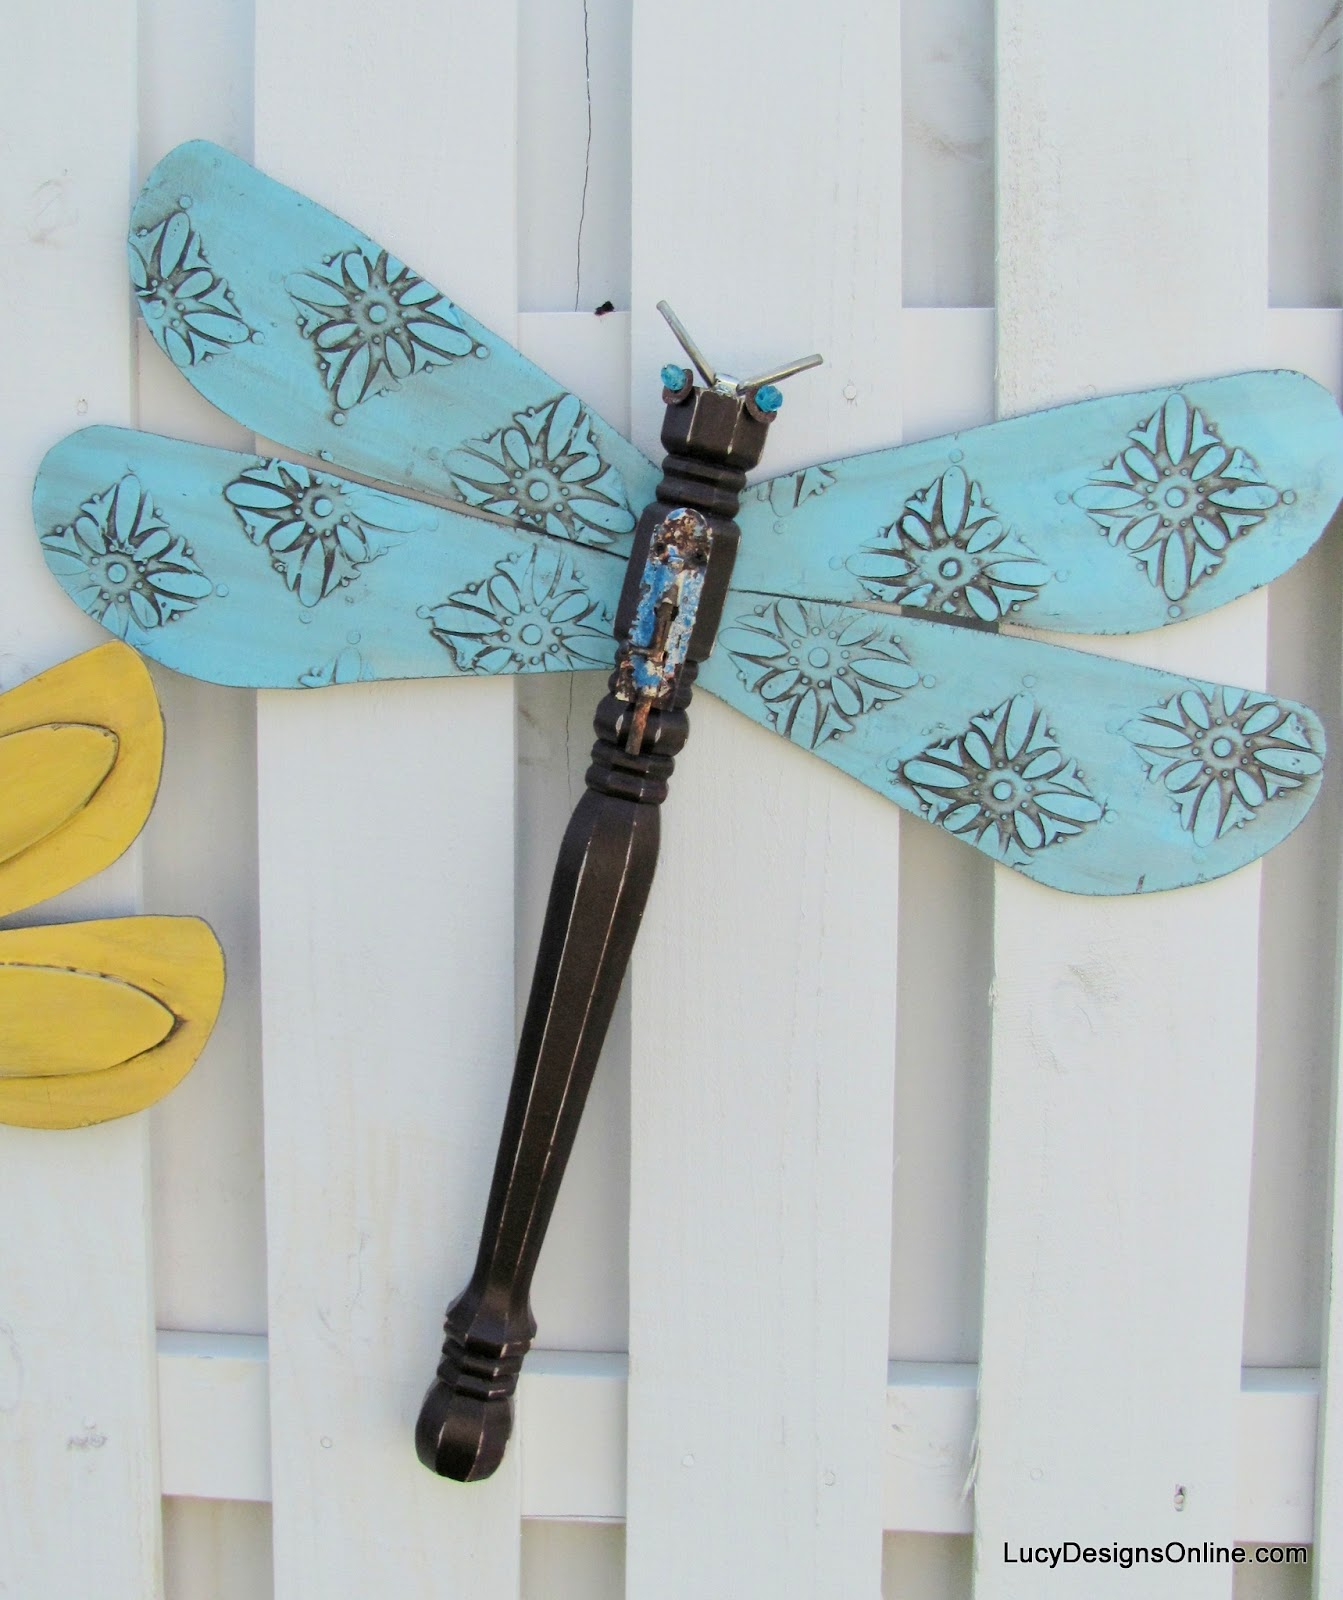 blue textured wing table leg dragonfly